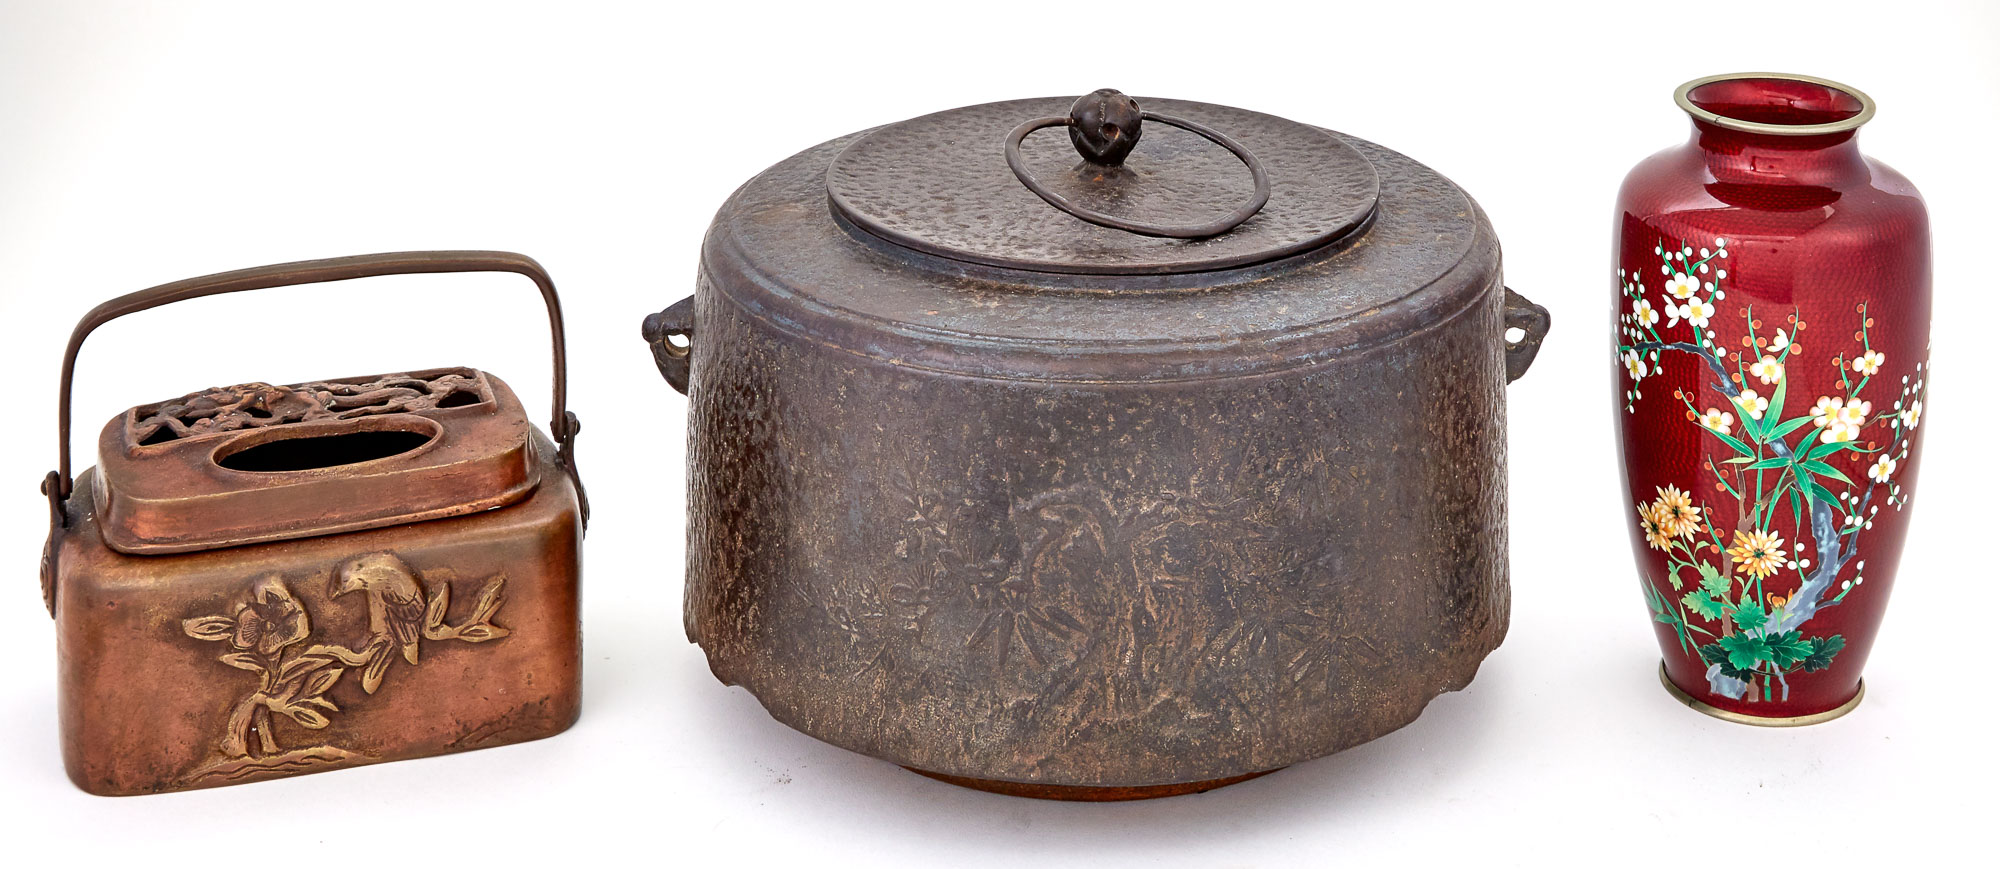 Lot image - Japanese Iron Hibachi Cooler and Cover; Together with a Bronze Hand Warmer and Cloisonné Enamel Vase